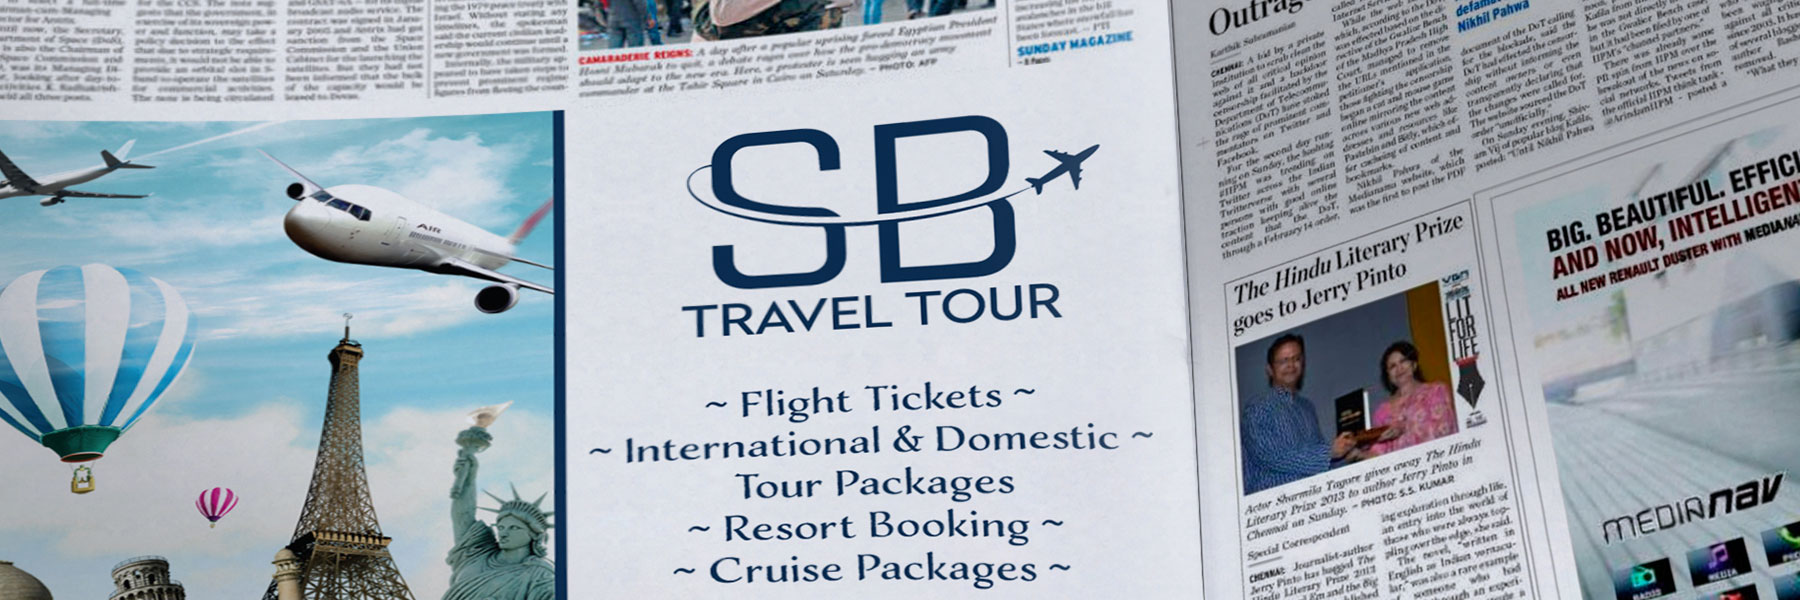 SB Travel Tour